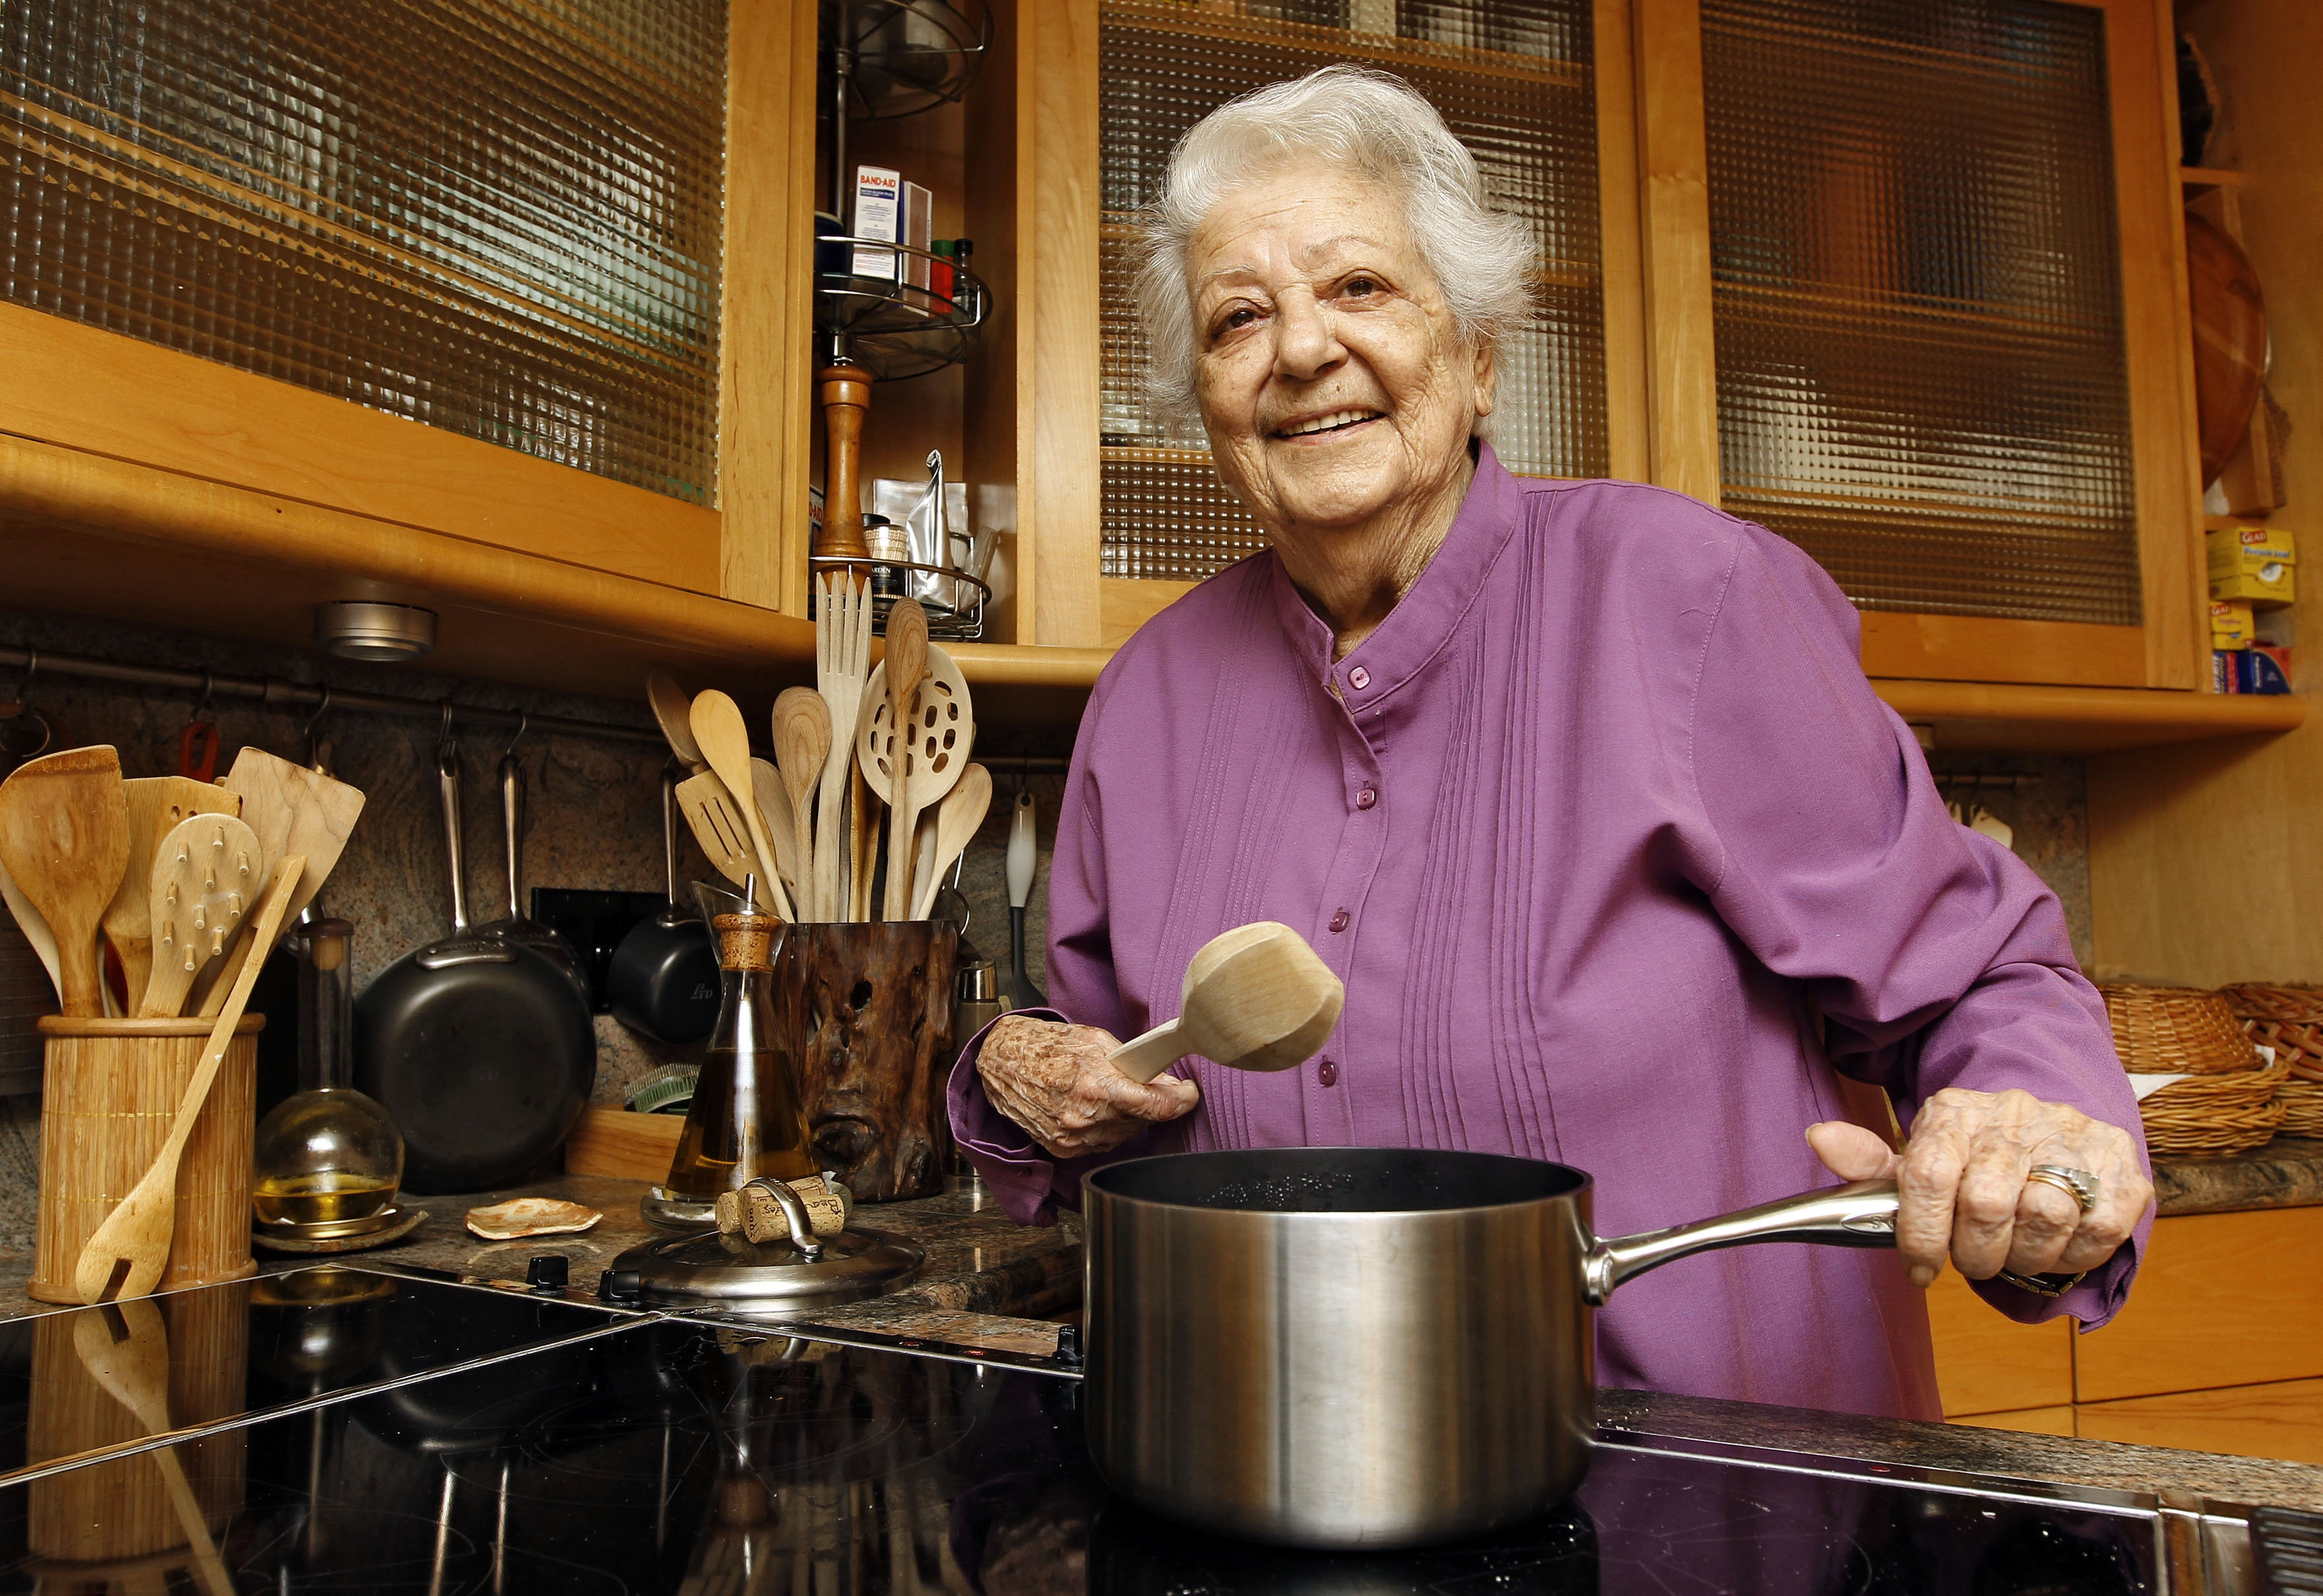 FILE - In this May 29, 2012 file photo, chef Marcella Hazan poses in the kitchen of her Longboat Key, Fla., home. Hazan, the Italian-born cookbook author who taught generations of Americans how to create simple, fresh Italian food, died Sunday, Sept. 30, 2013 at her home in Florida, according to an email from her son, Giuliano Hazan. She was 89.  (AP Photo/Chris O'Meara, File)